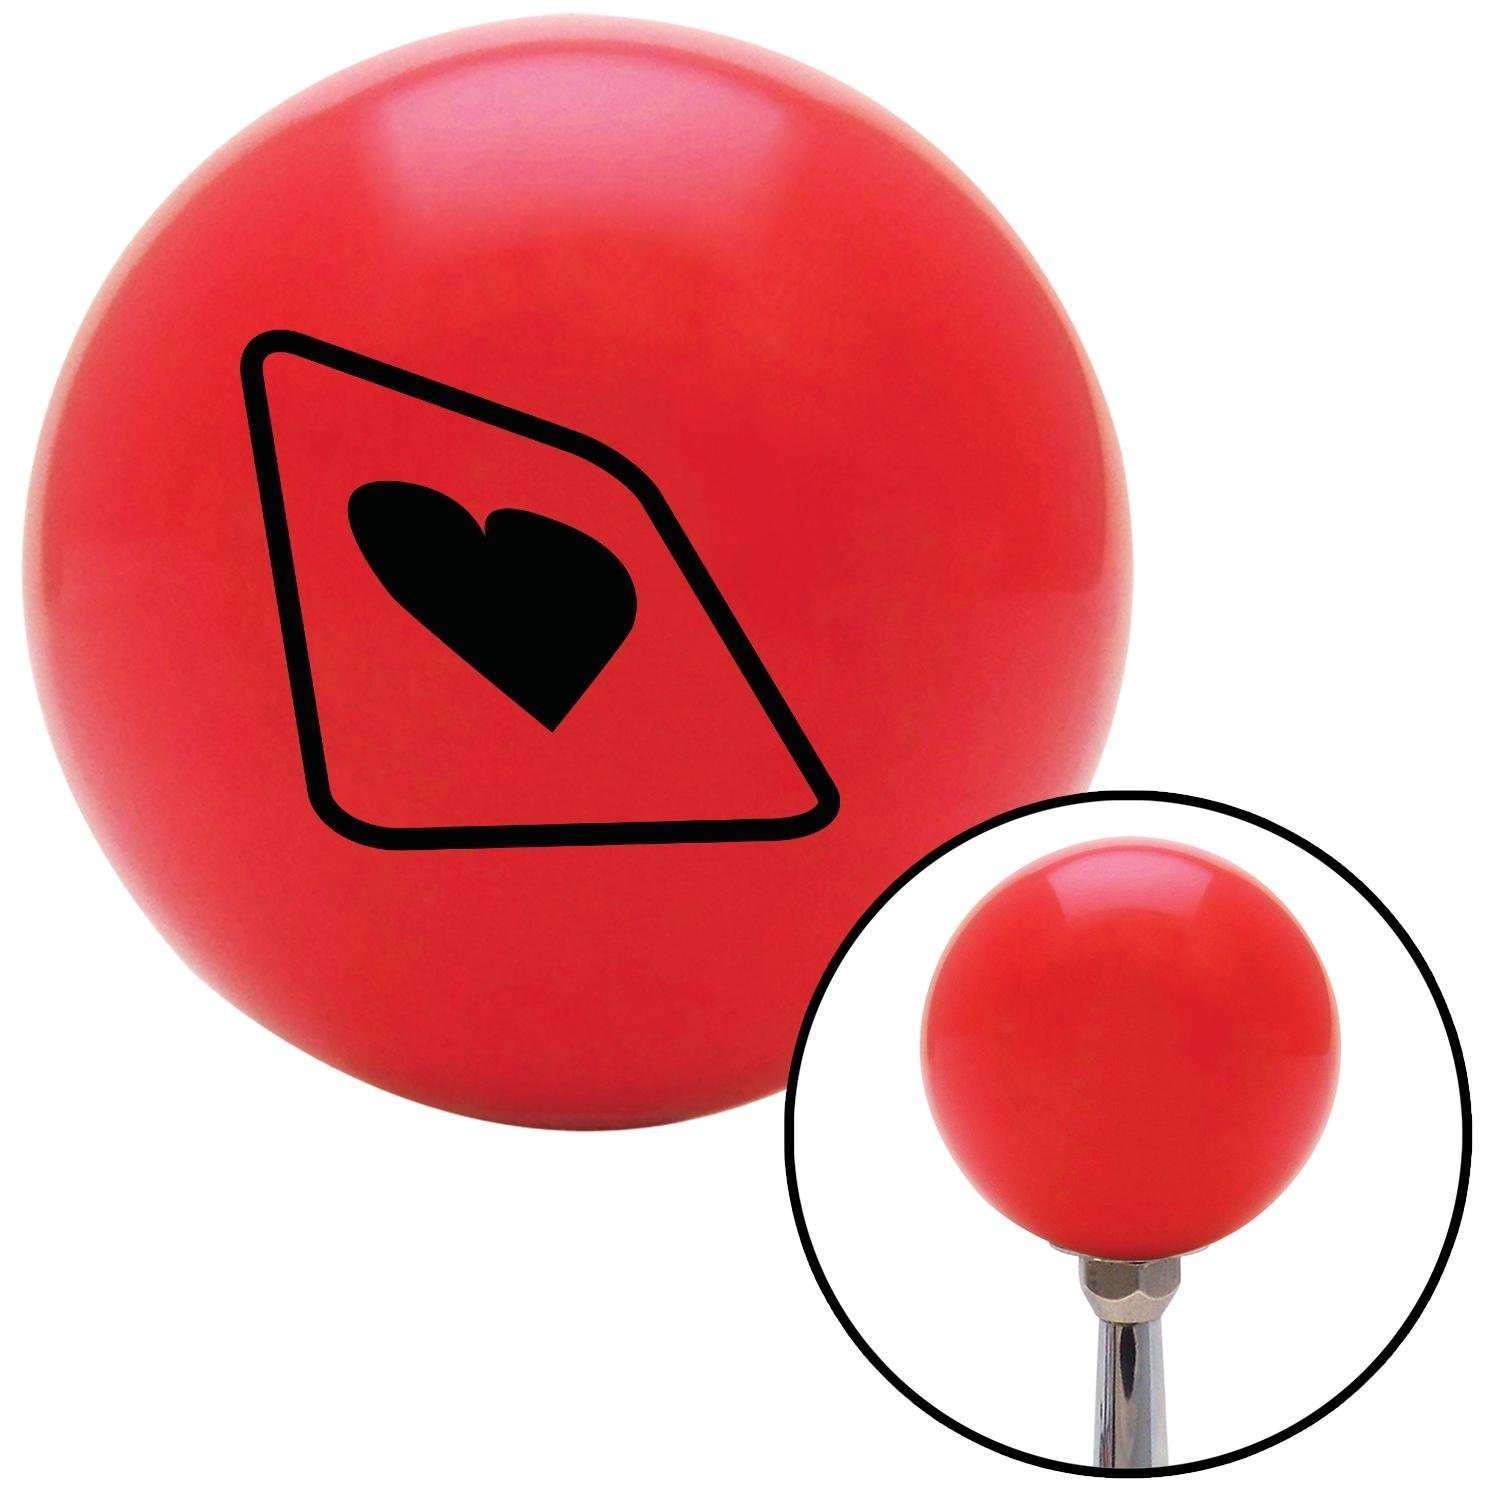 Black Heart on a Card American Shifter 94890 Red Shift Knob with M16 x 1.5 Insert